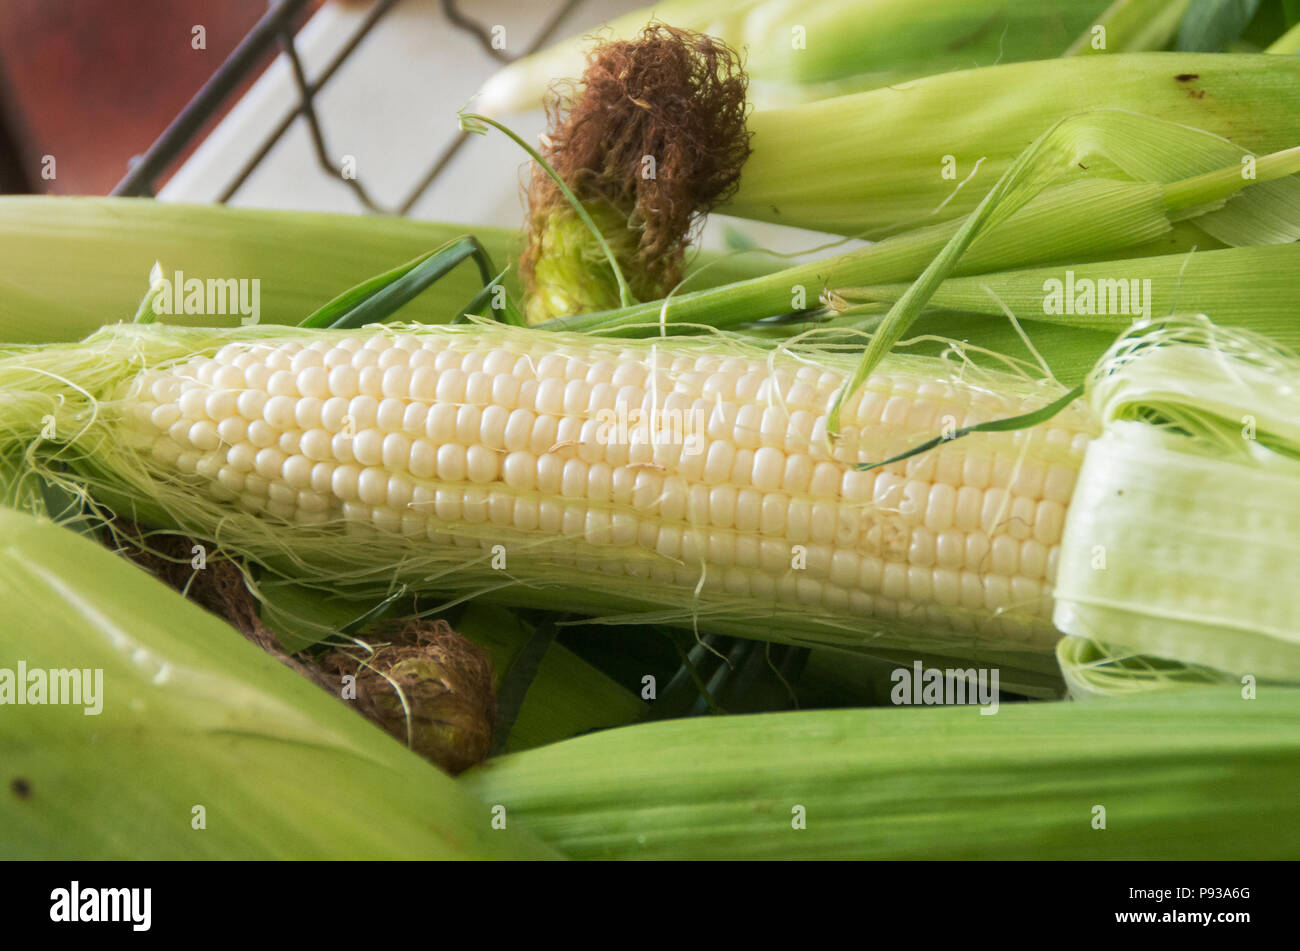 Ears of corn are ready for sale at the Farmers Market in New Bern North Carolina - Stock Image